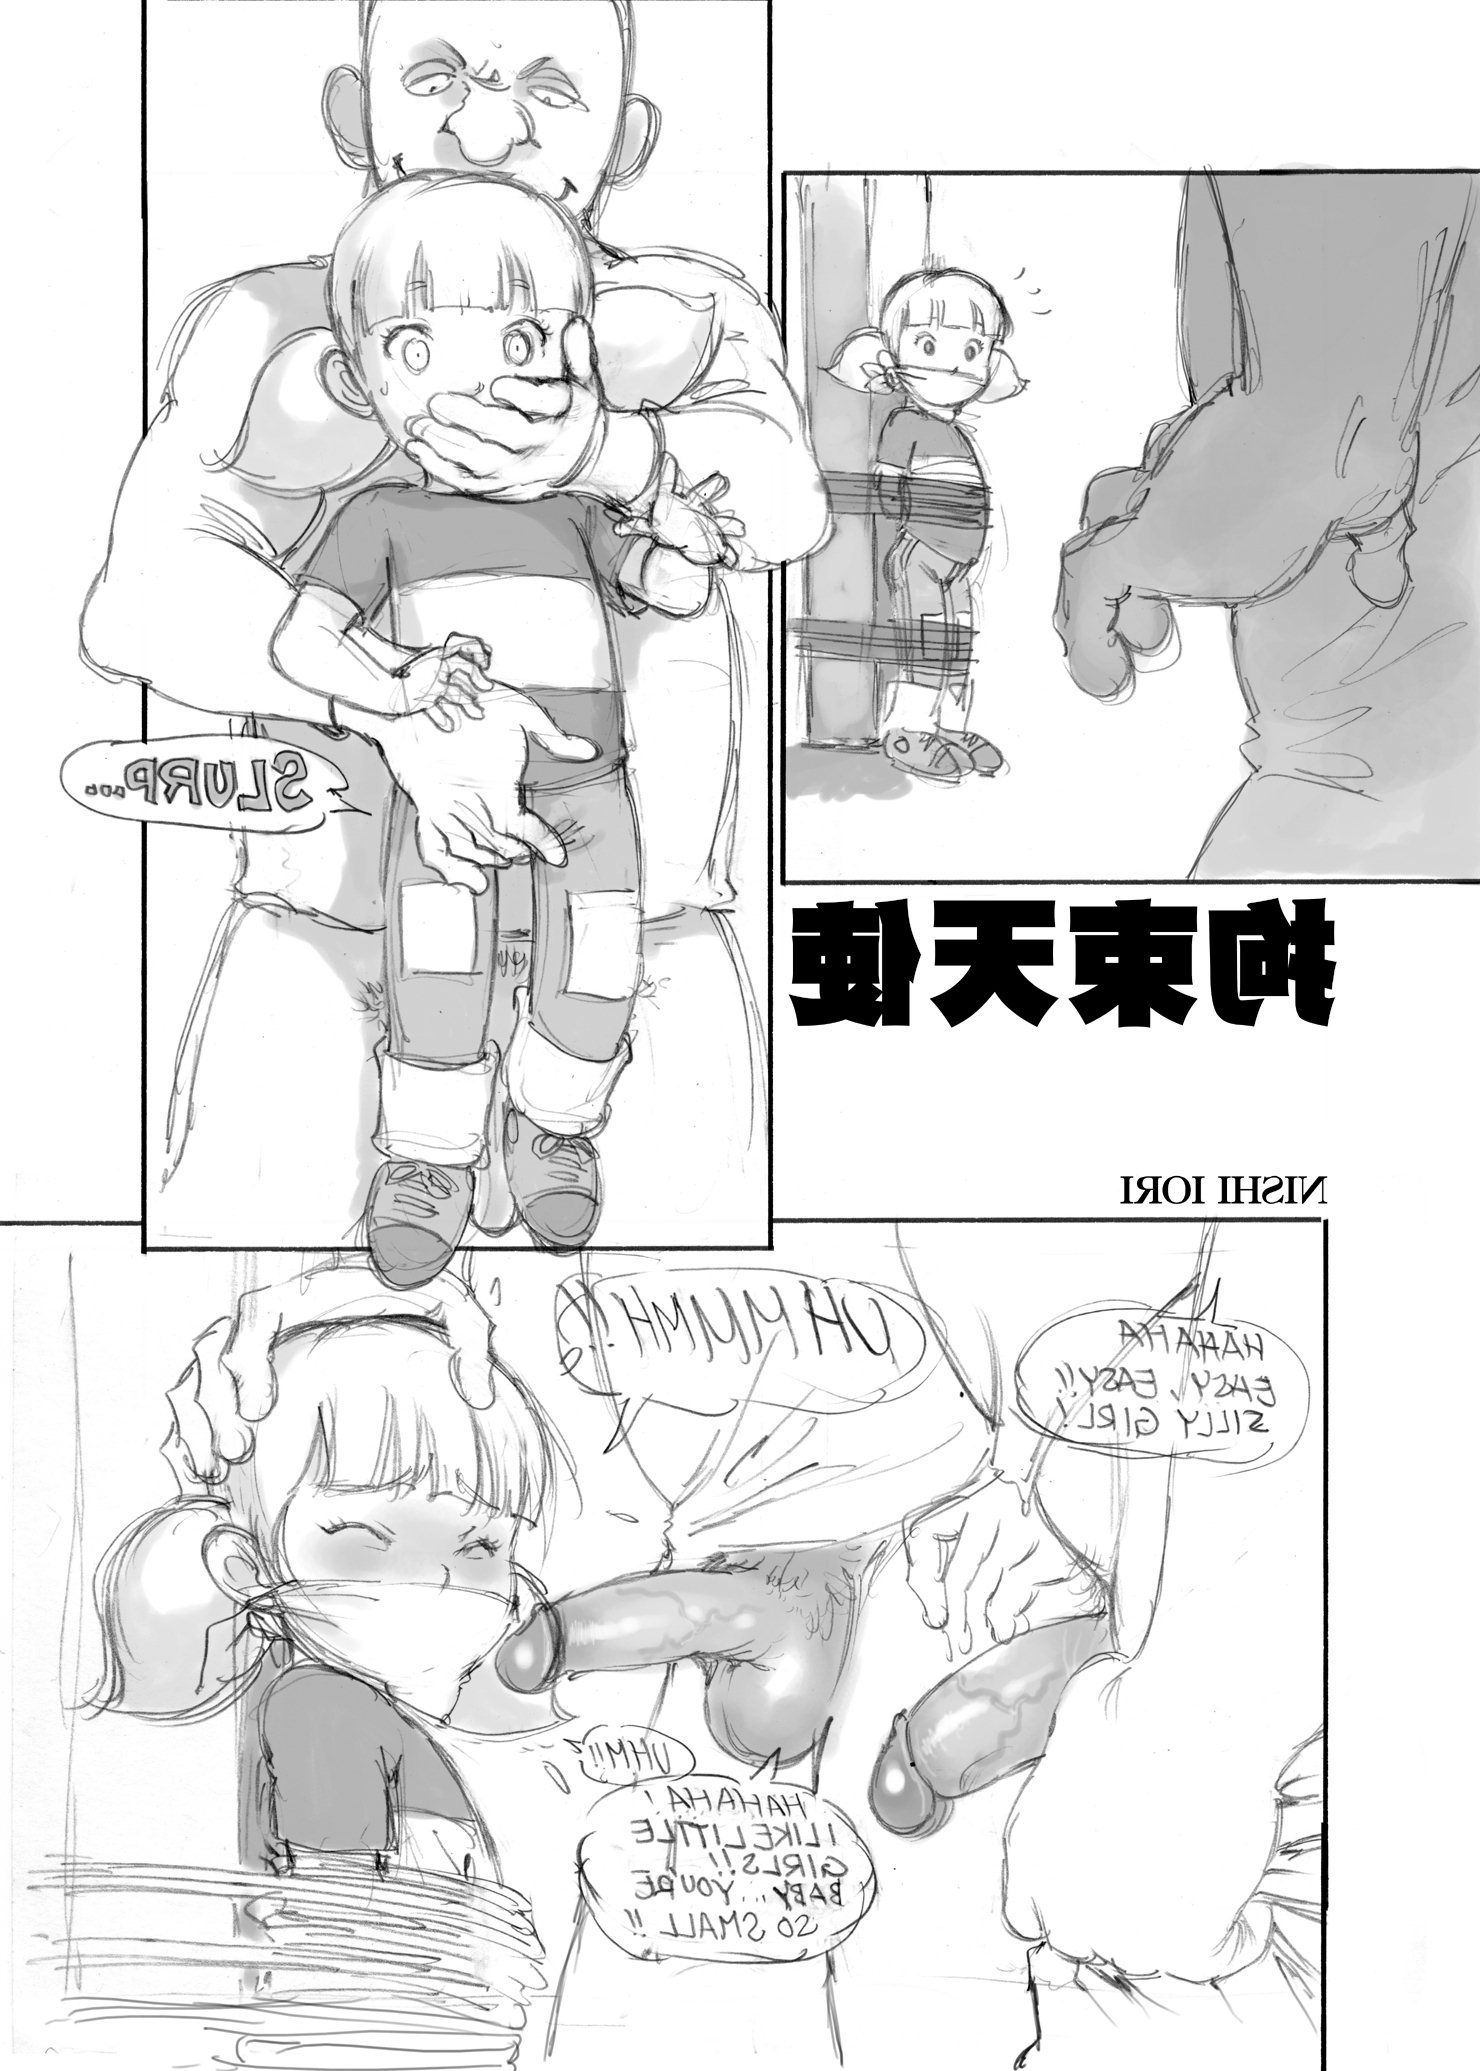 Share Incest toddlercon comic english thought